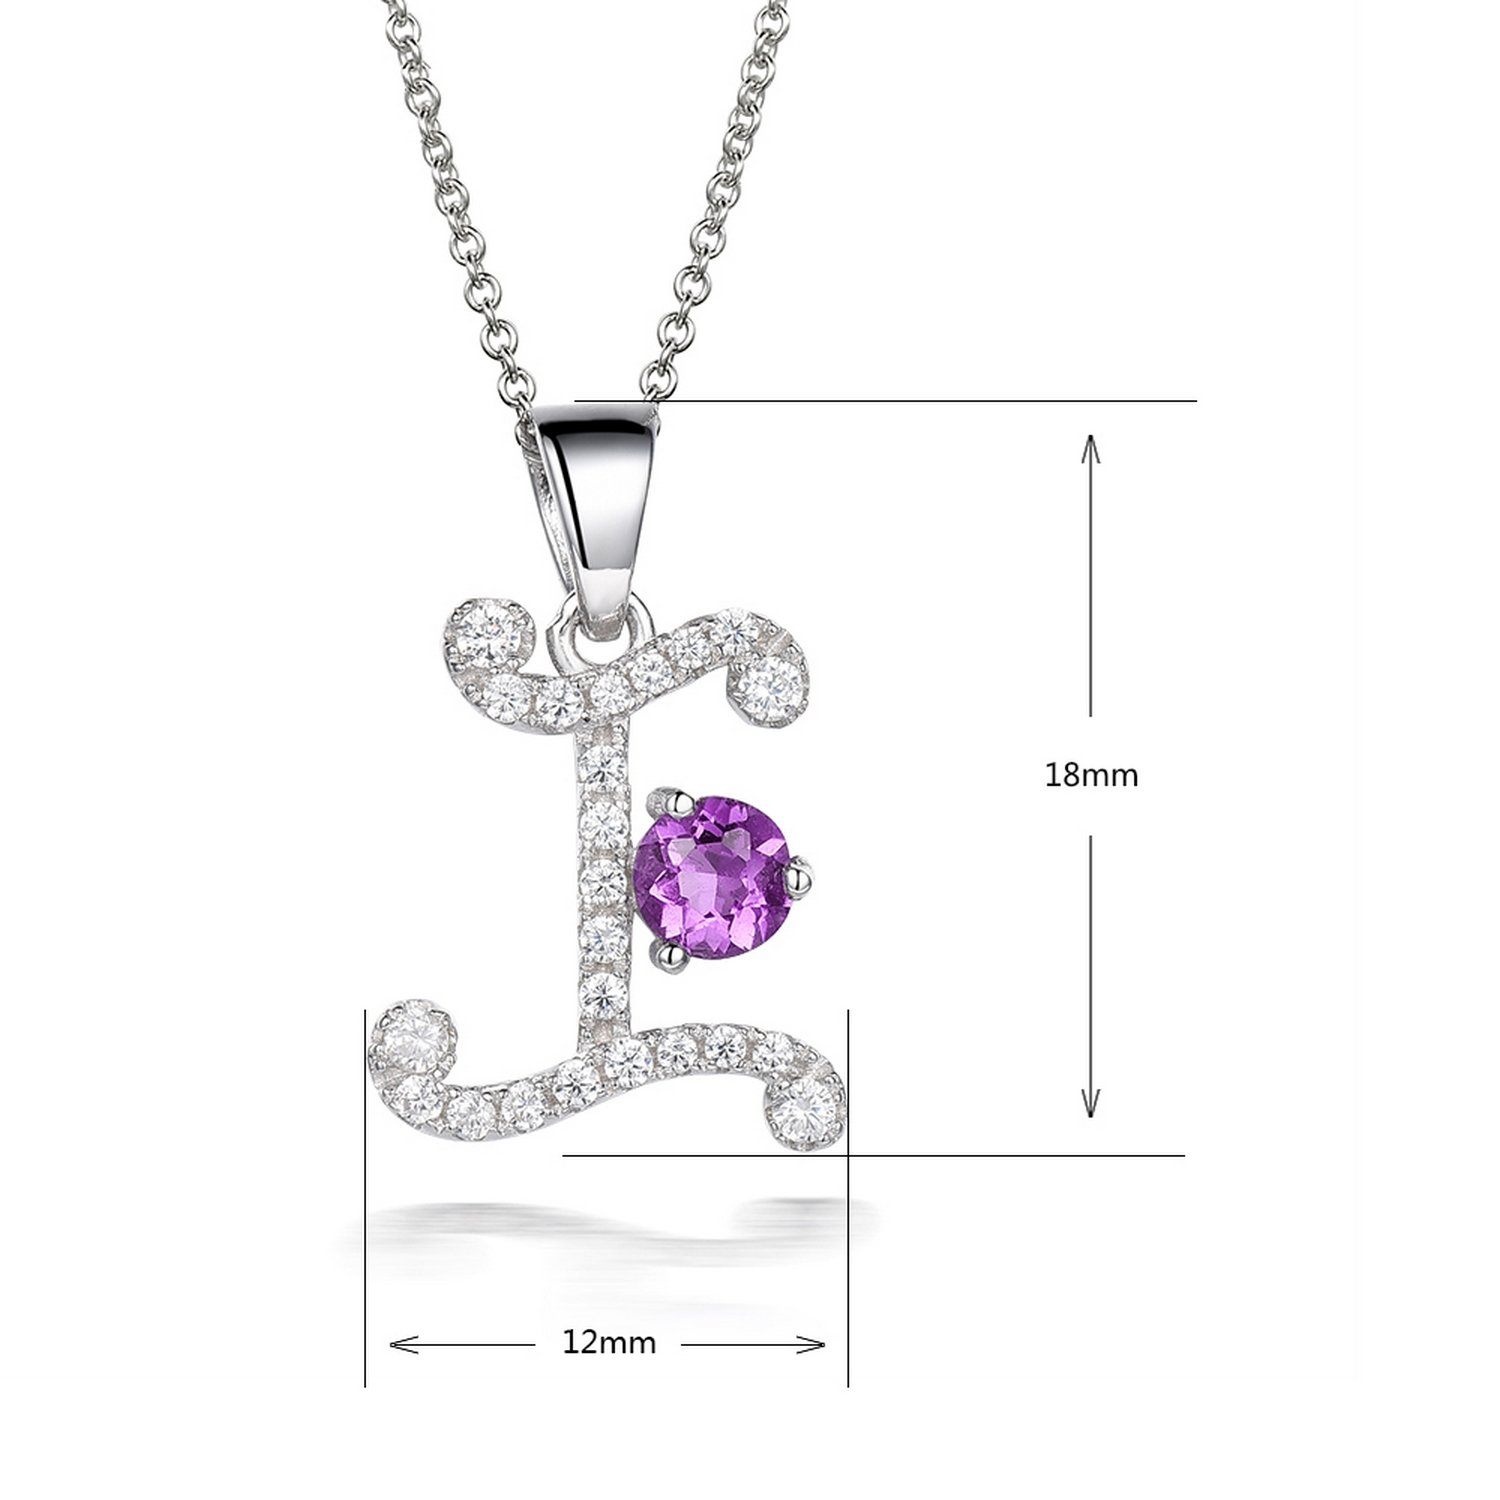 MMC 0.87ct Gemstones Charm I Silver Pendants Necklaces